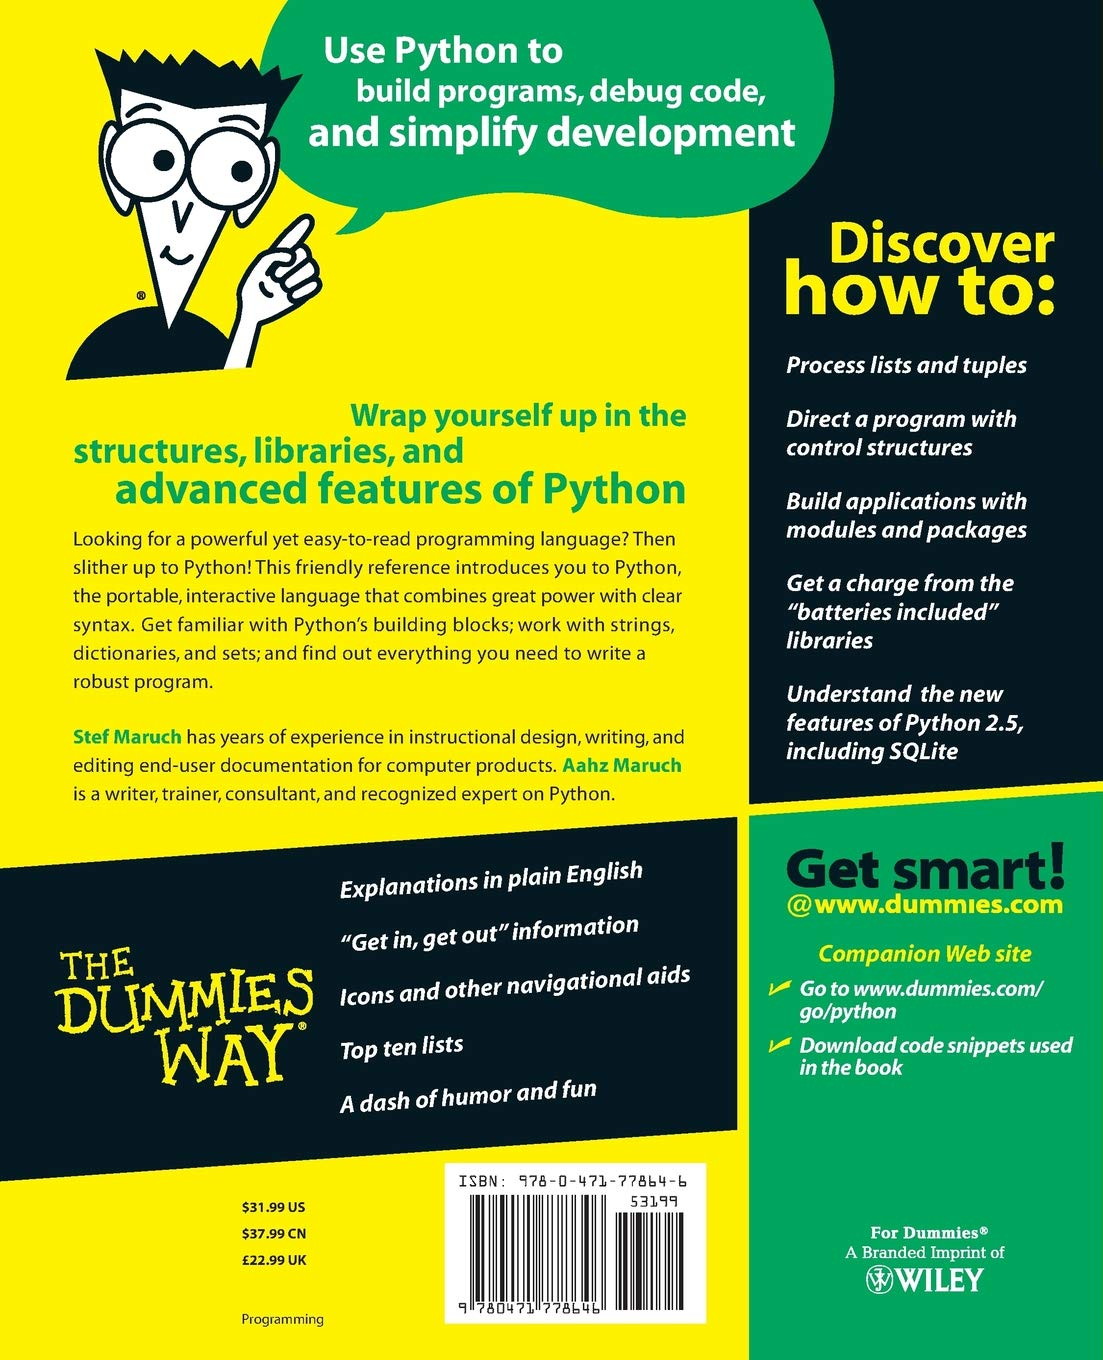 Python for Dummies: Amazon co uk: Stef Maruch: 8601400640210: Books